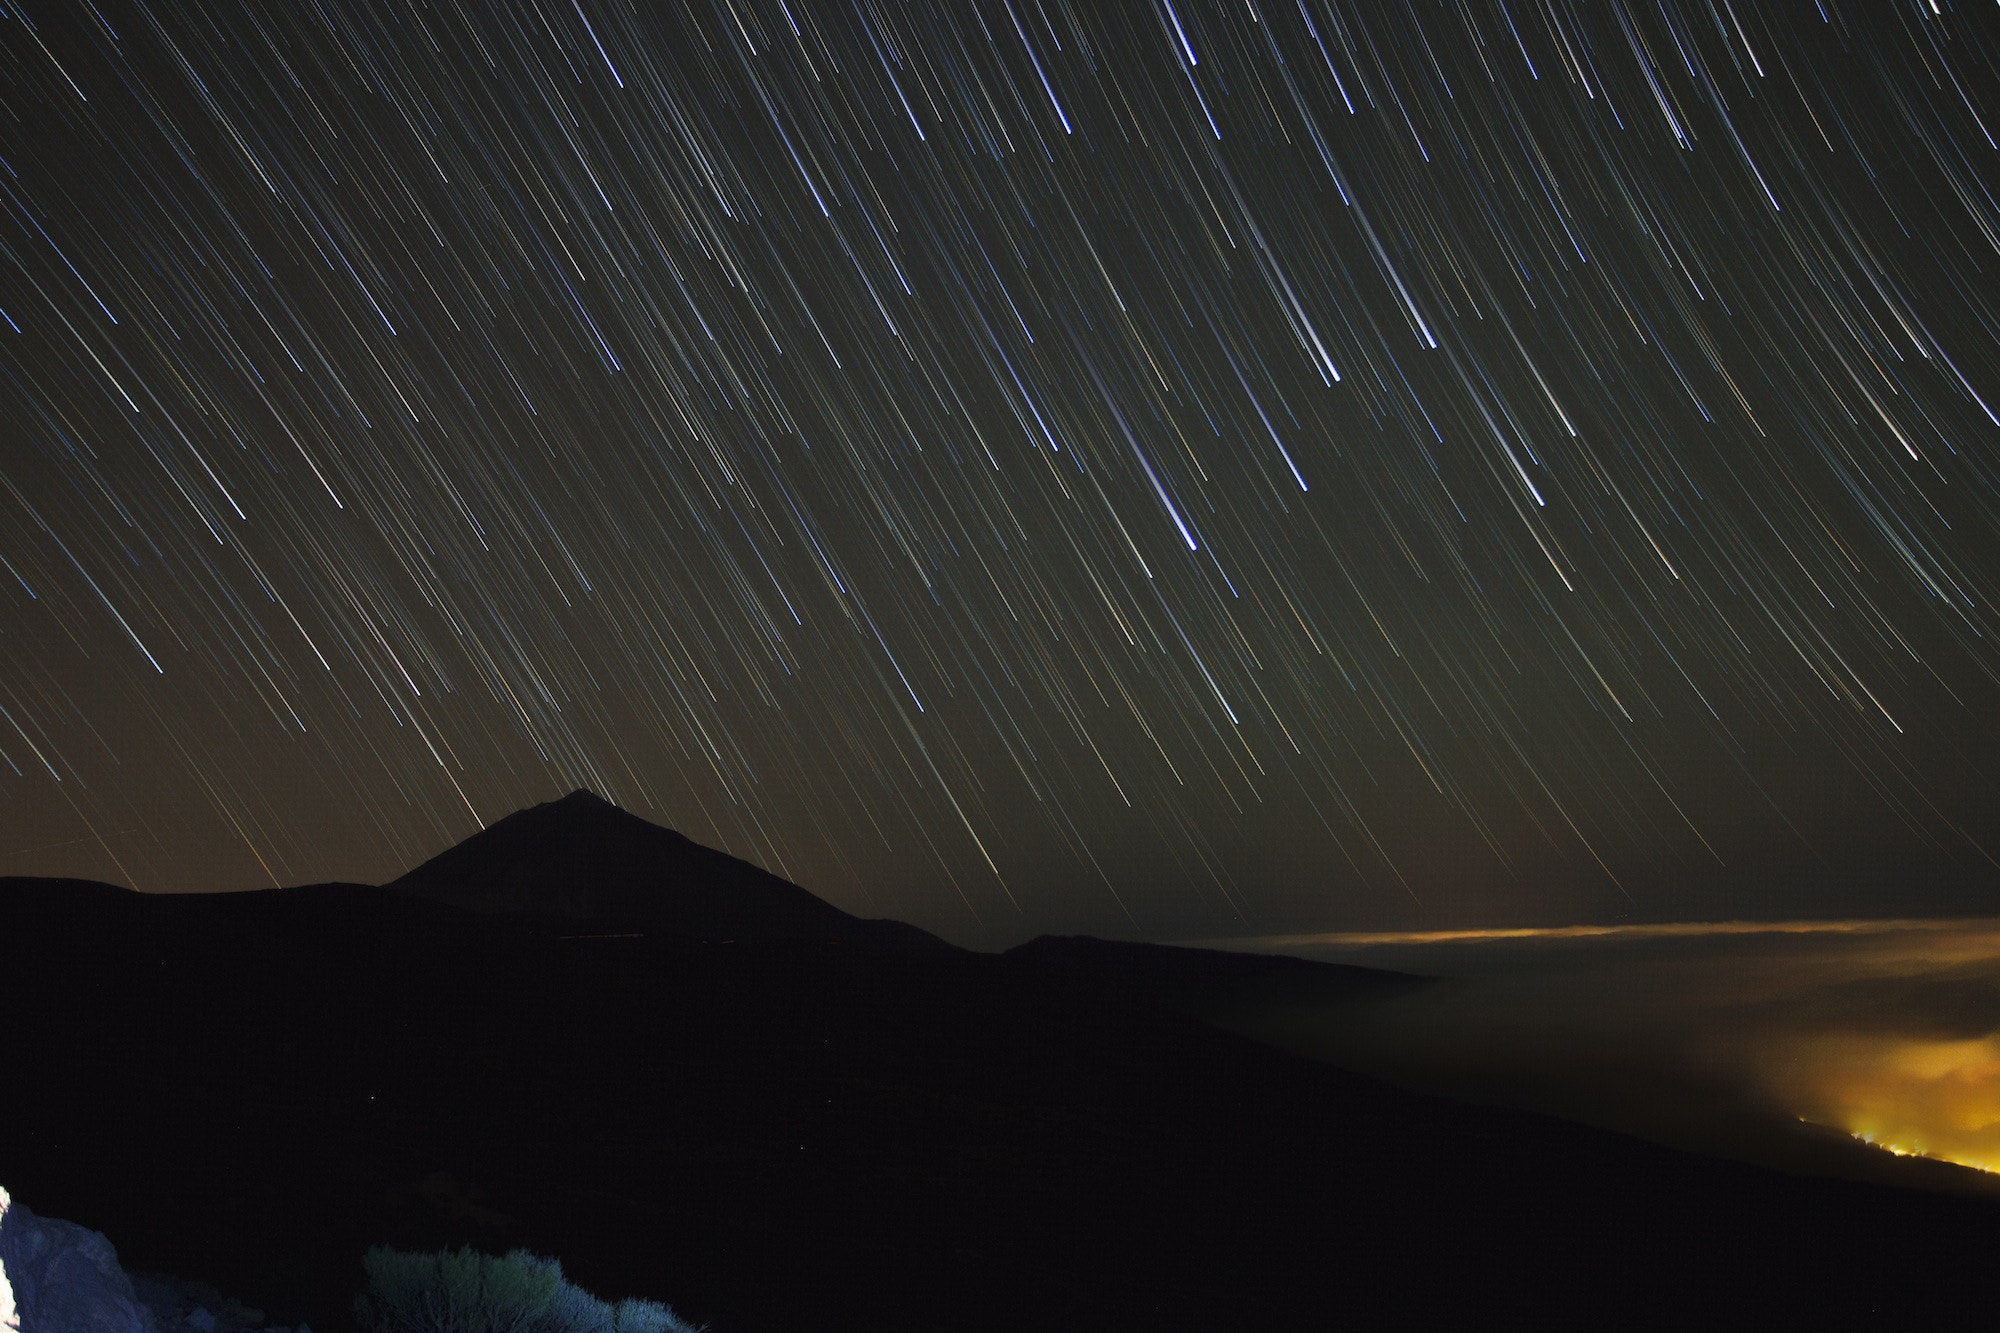 Photograph Startrails over Teide by Tim Nazarov on 500px